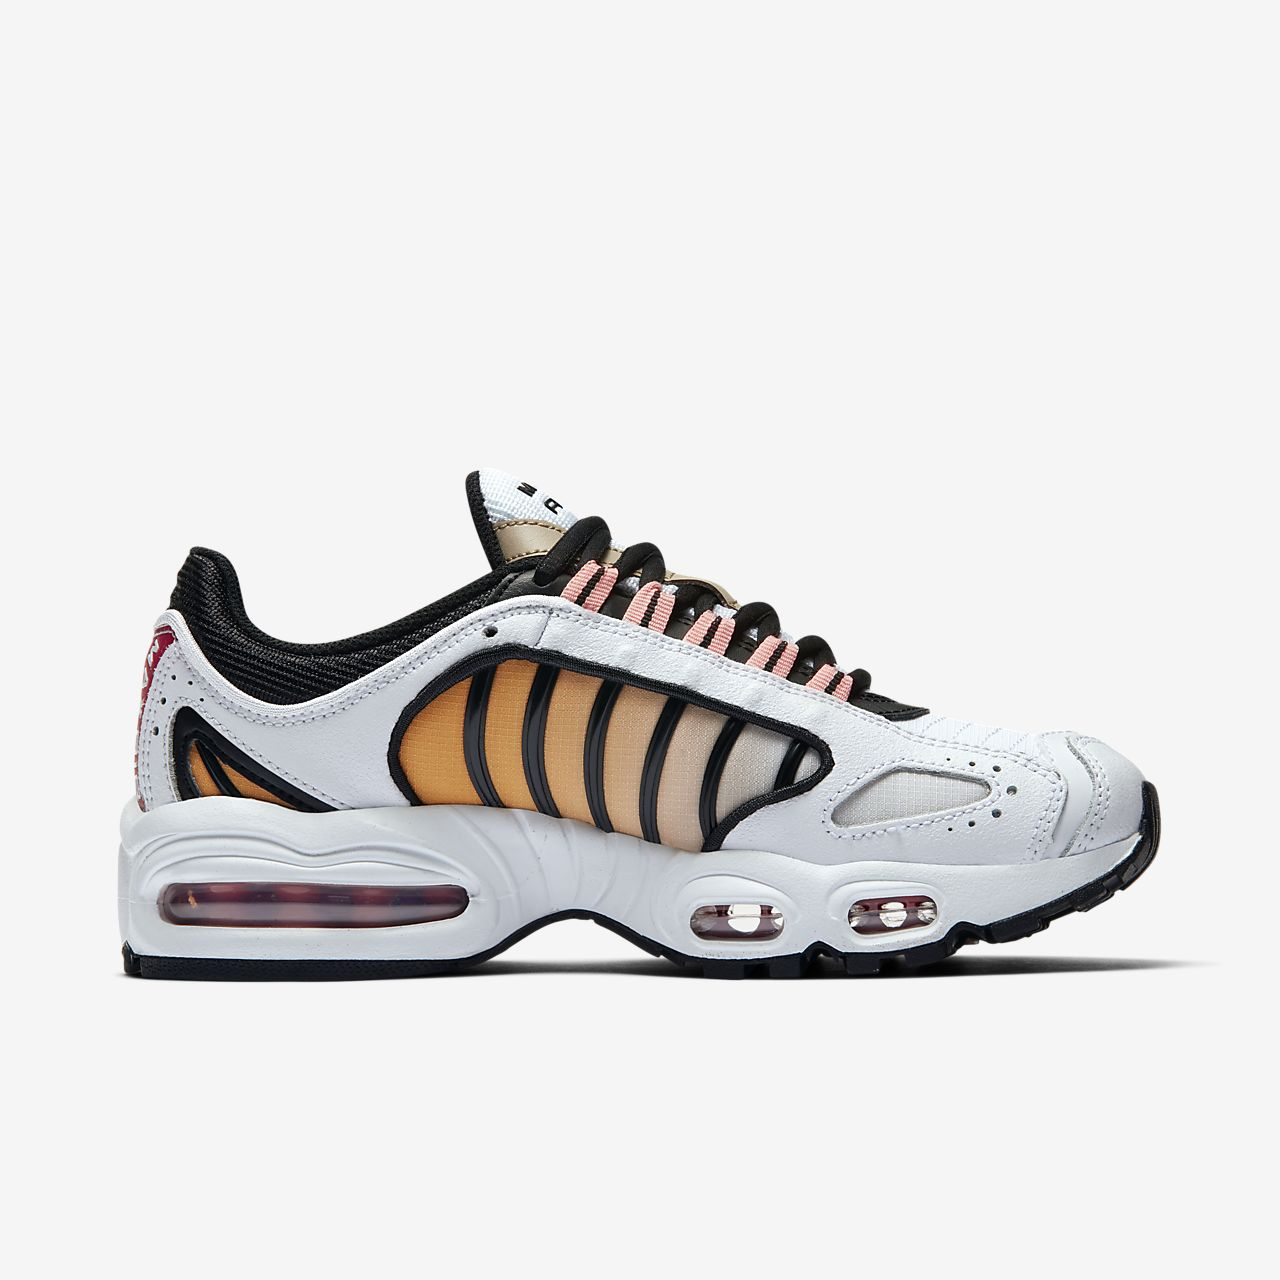 Chaussure Nike Air Max Tailwind 4 pour Femme